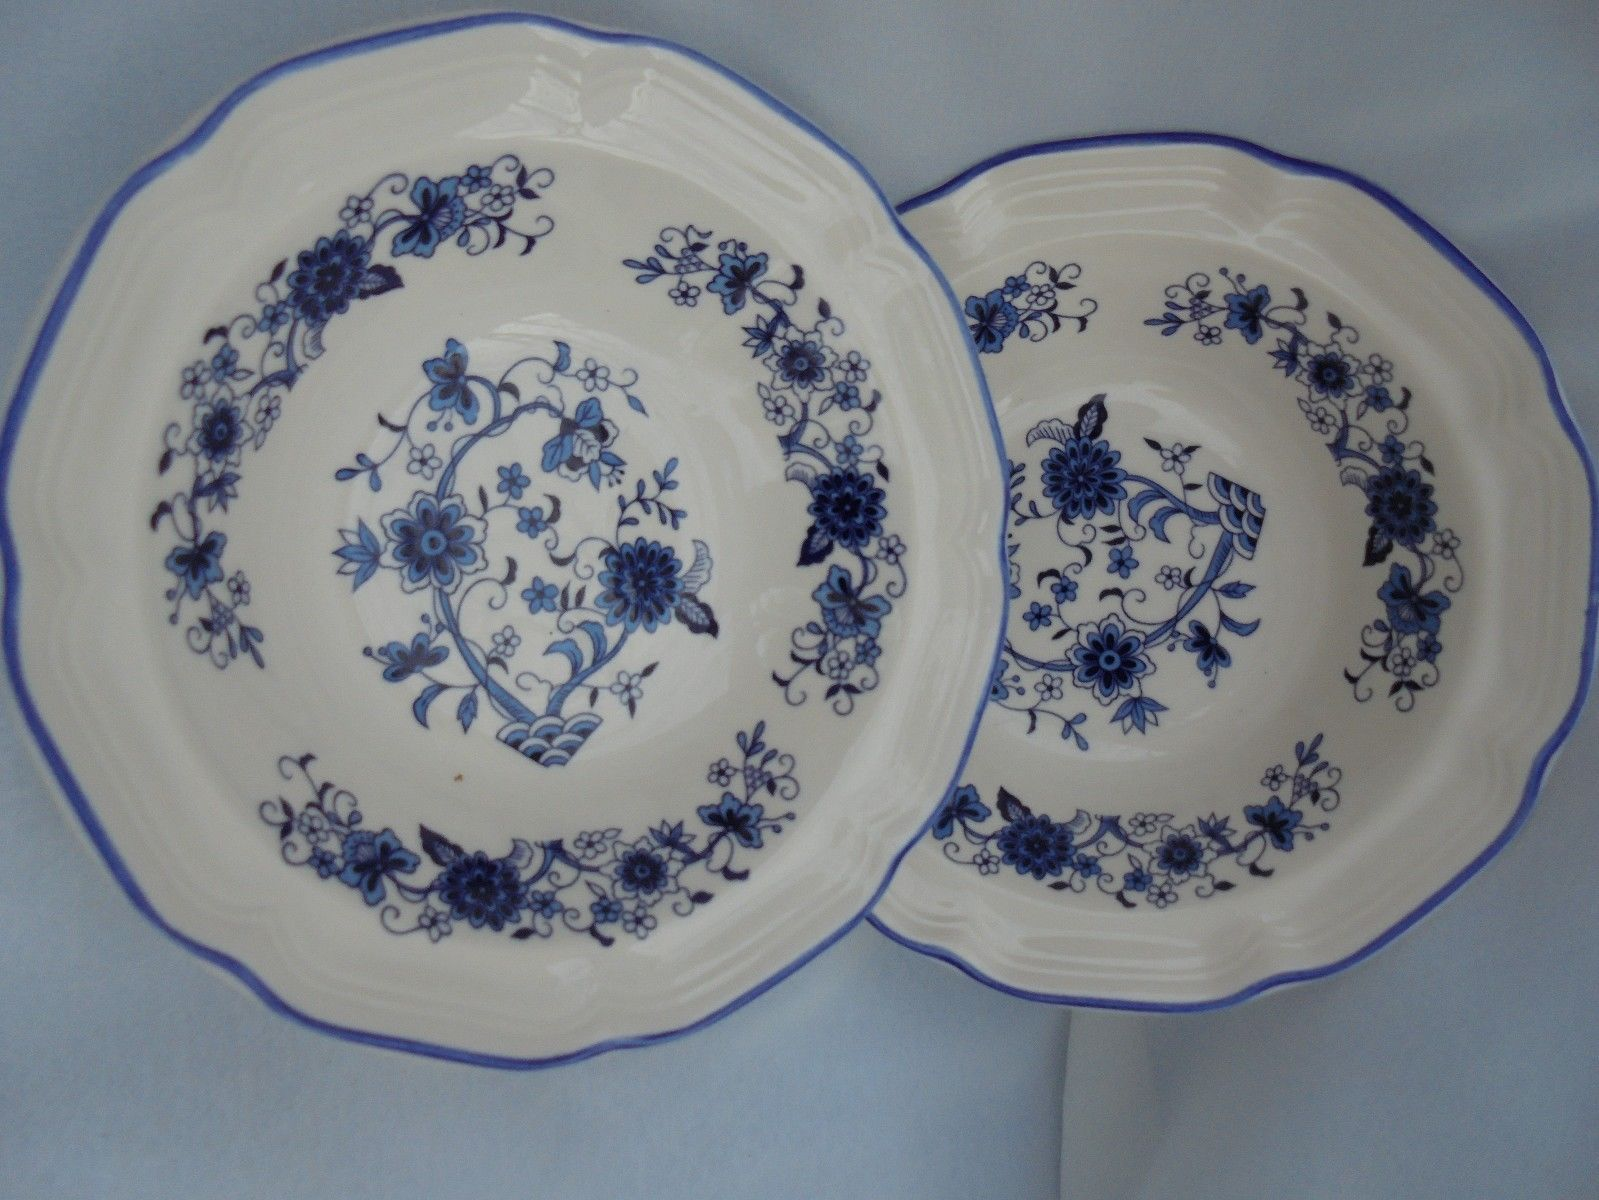 Blue Willow China Plates Bowls Dishes White Cereal Set of 2 F W Woolworth Onion - $27.66 & Blue Willow Dinner Plates: 5 listings